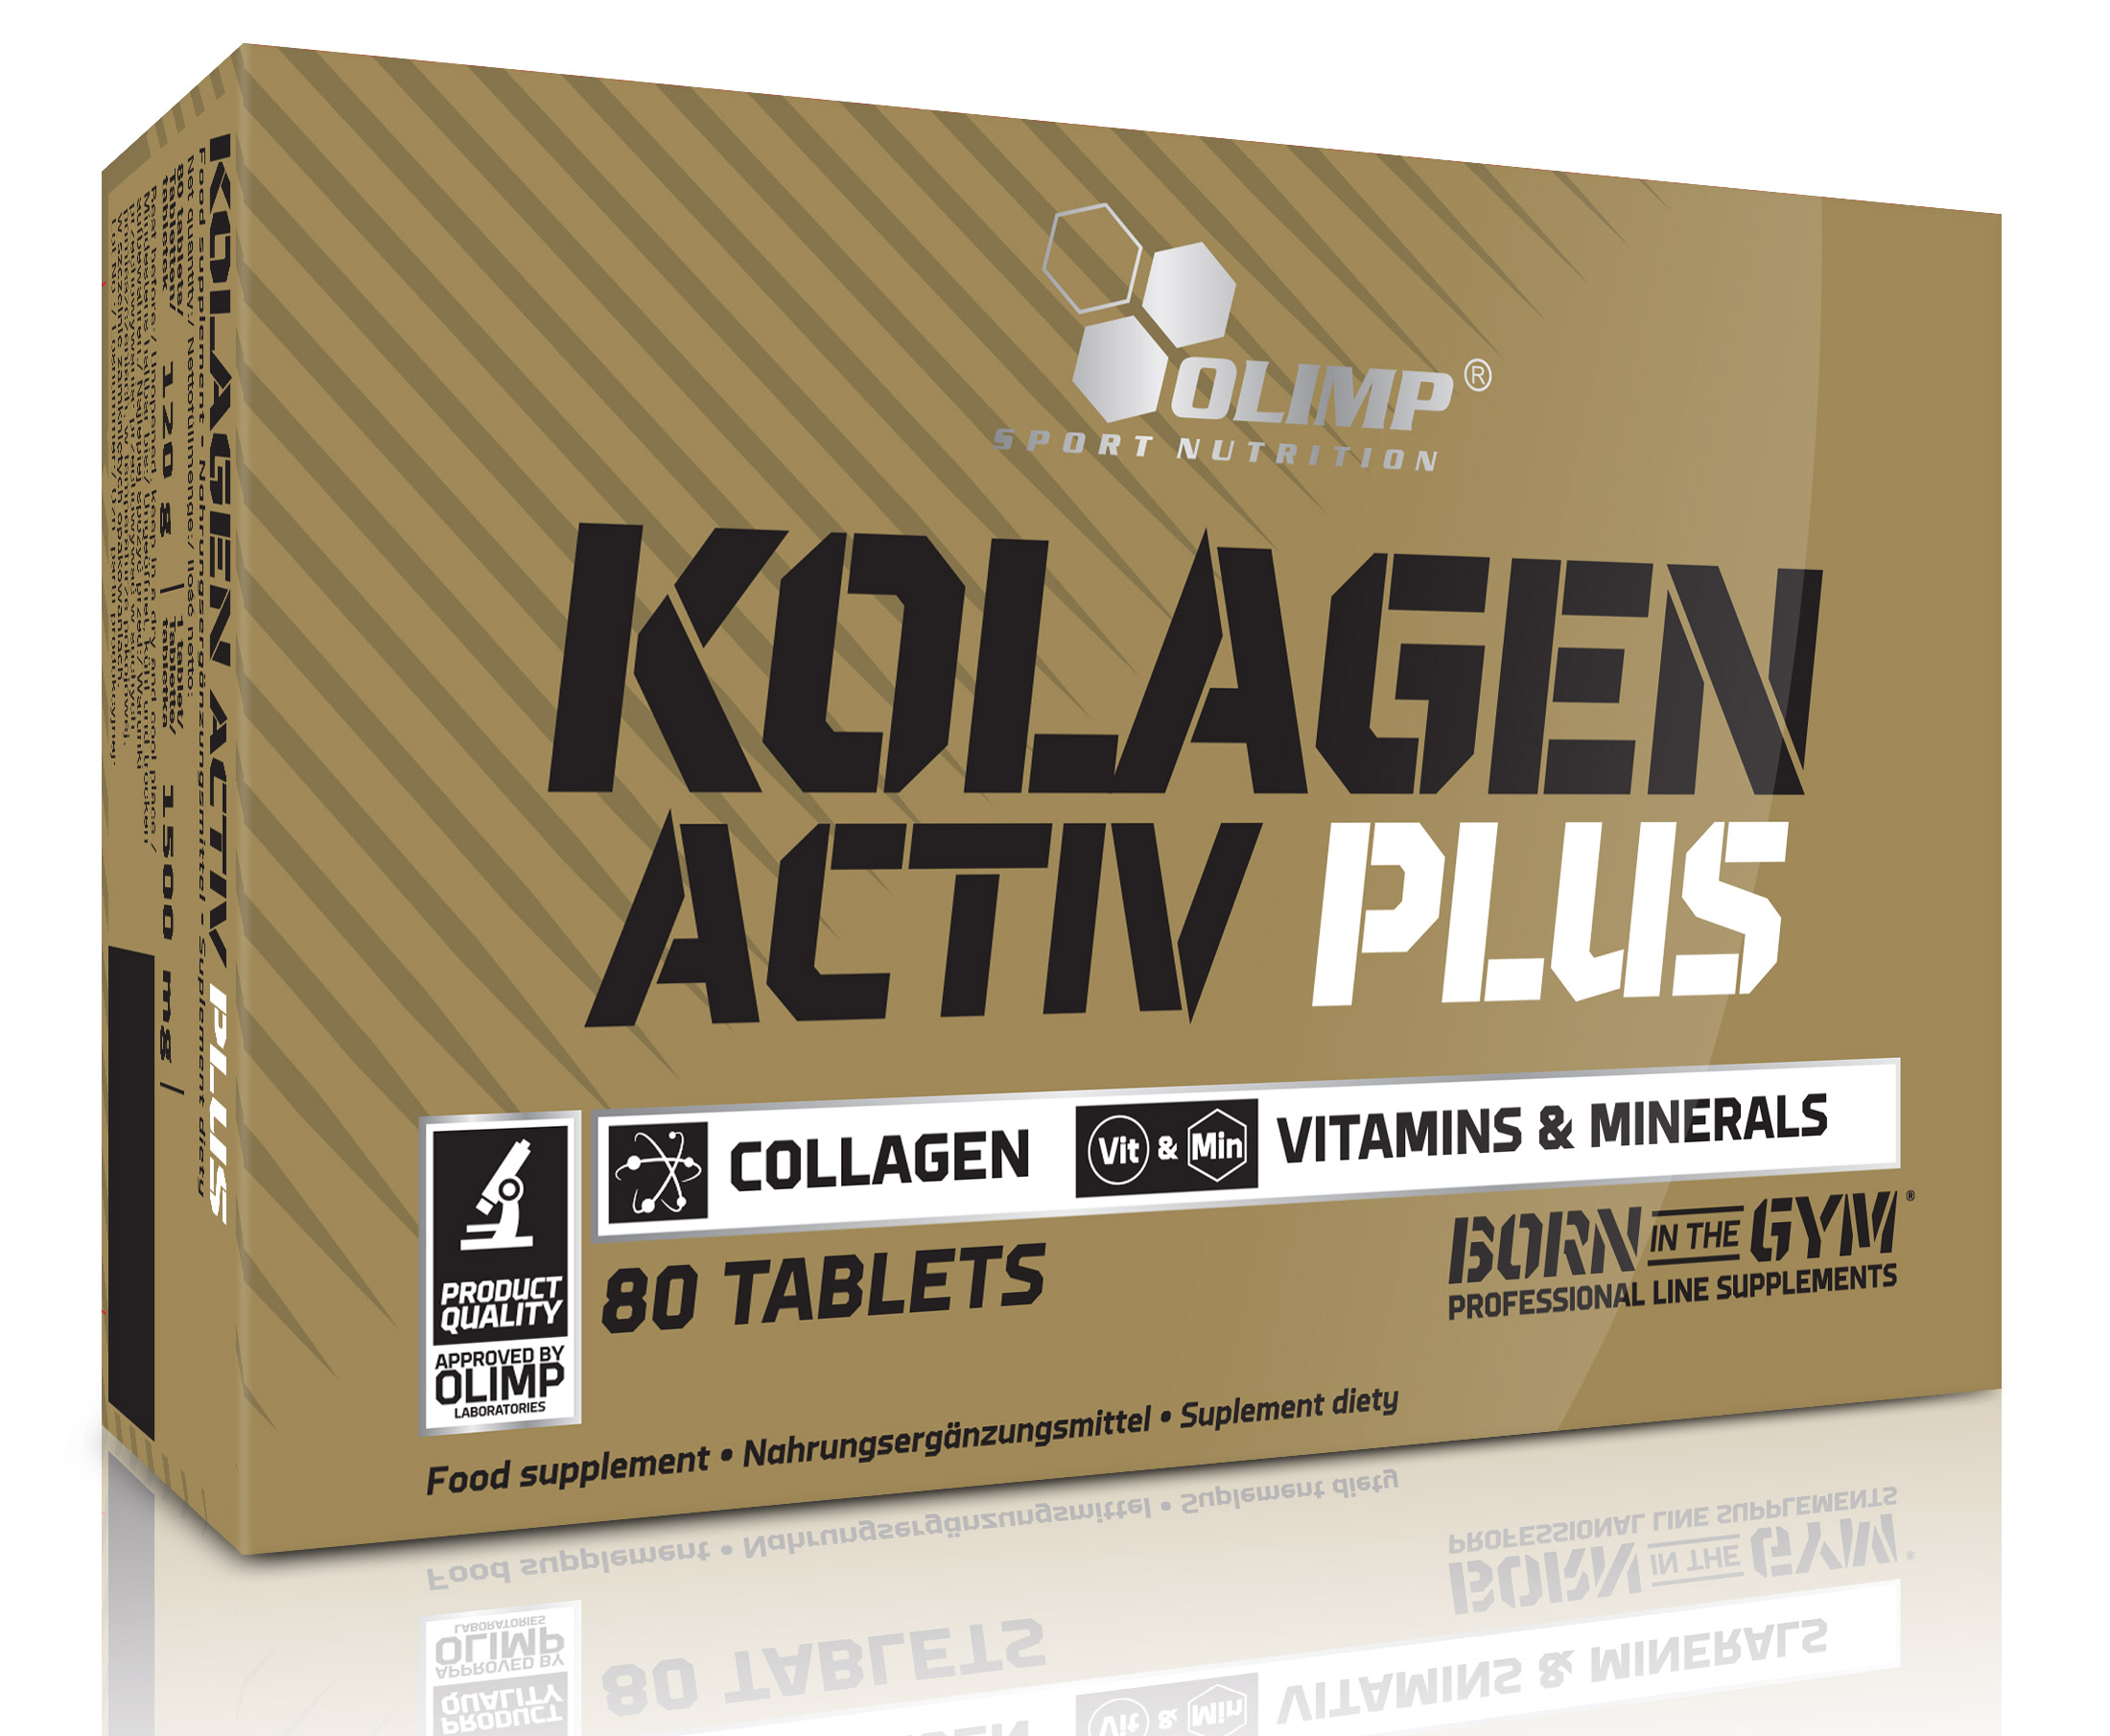 Kolagen Activ Plus Sport Edition Black Olimp (80 tab)